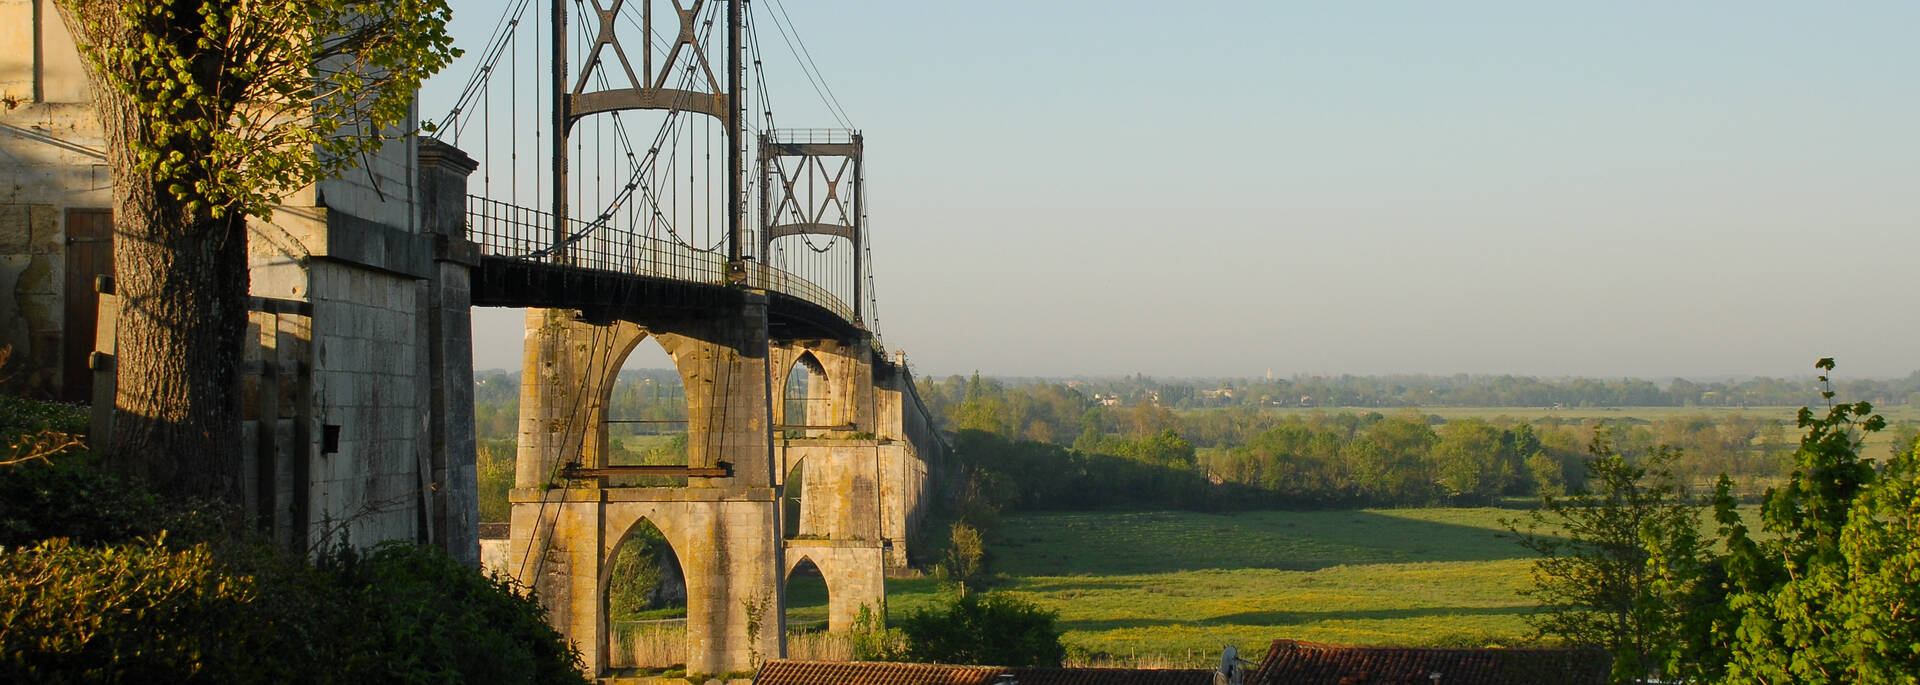 Suspended bridge in Tonnay-Charente - ©  Dominique Szatrowski - Fotolia